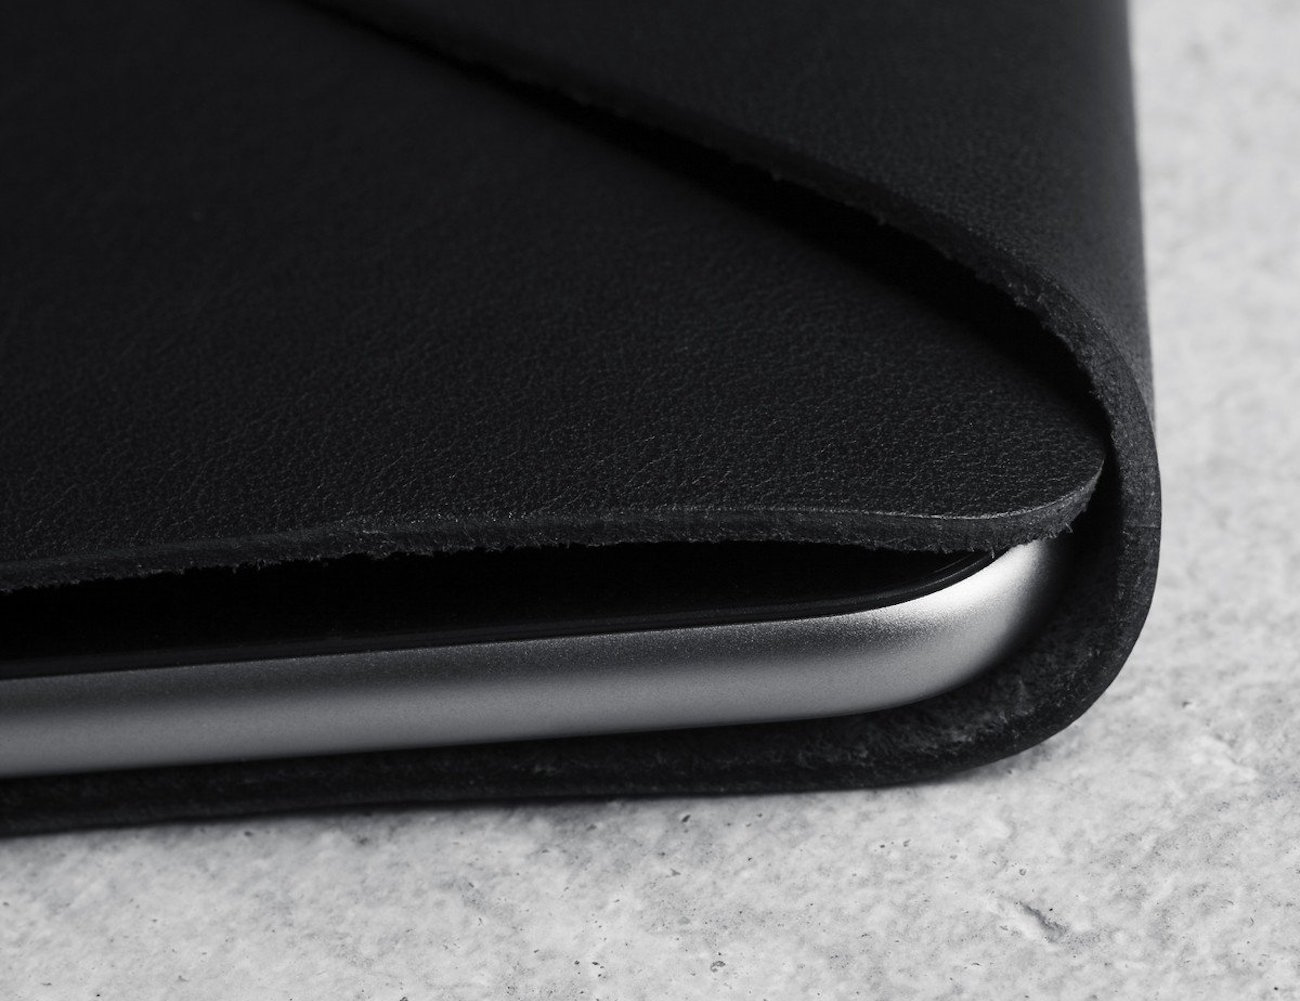 Black Leather iPhone 6/6s Wallet Sleeve by Mujjo